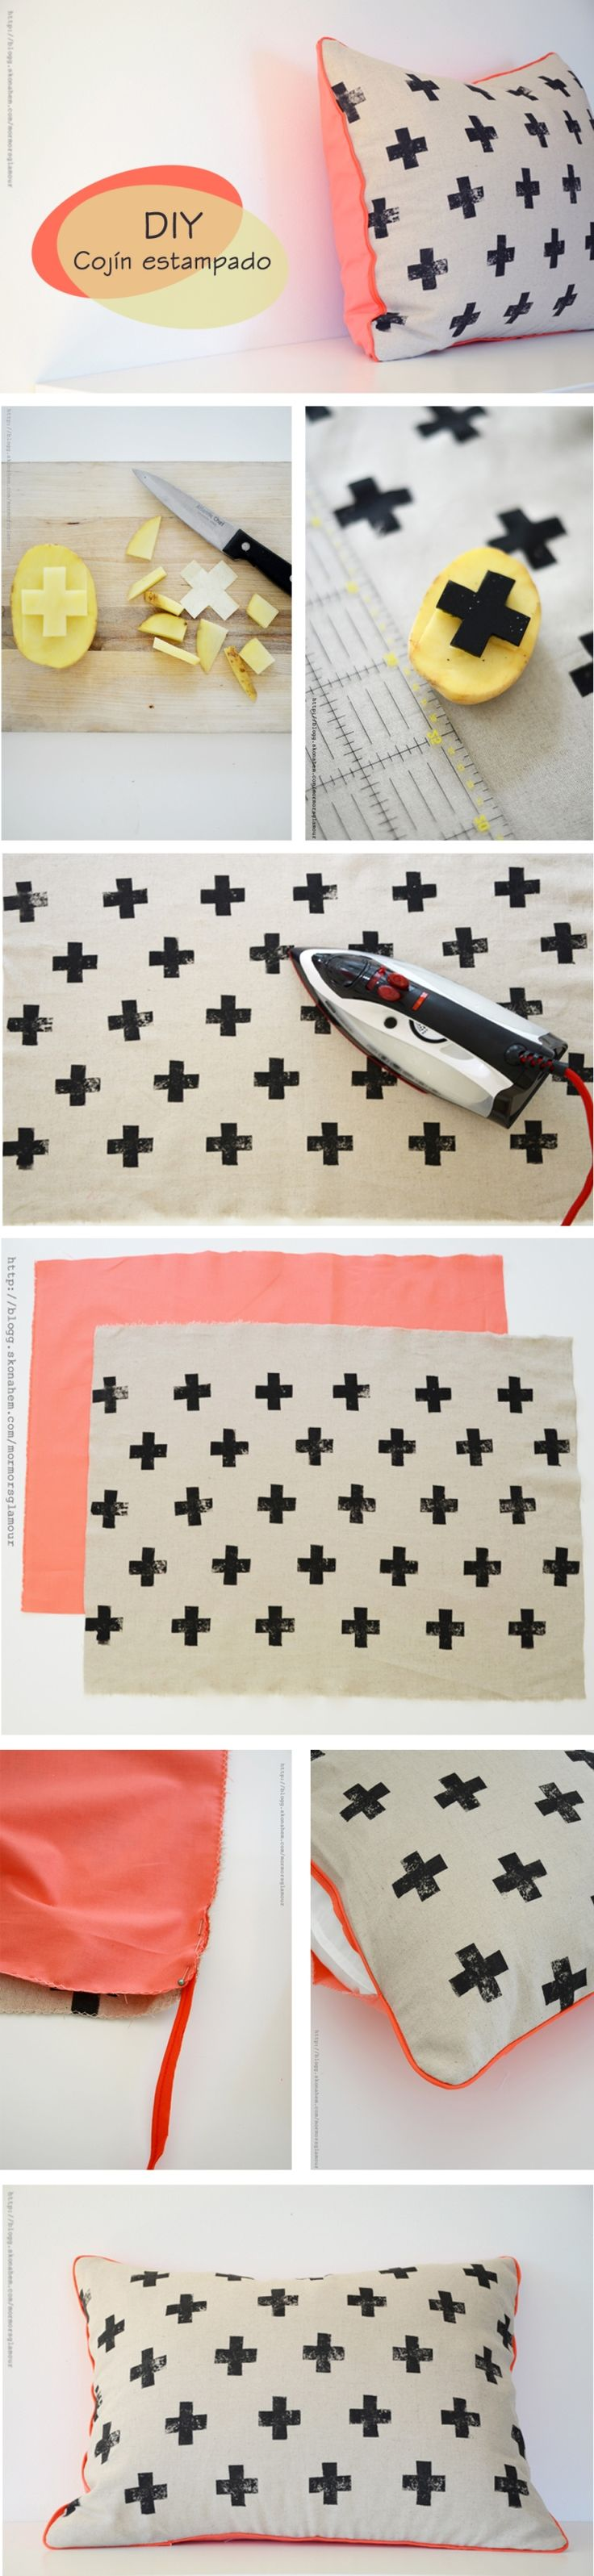 DIY cushion potato print